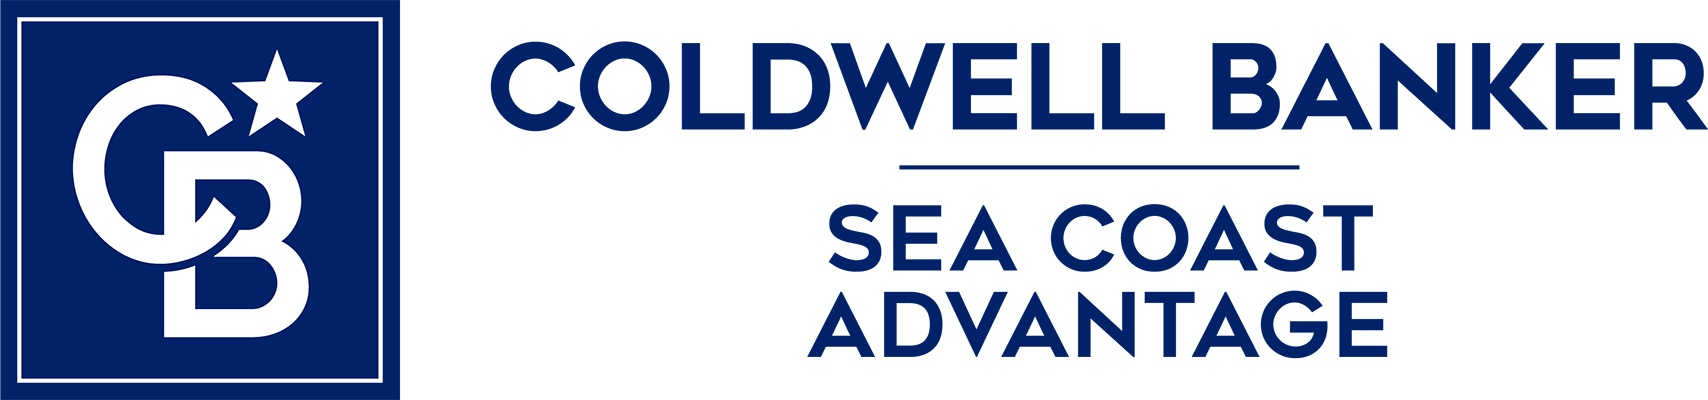 Heather Miller - Coldwell Banker Sea Coast Advantage Realty